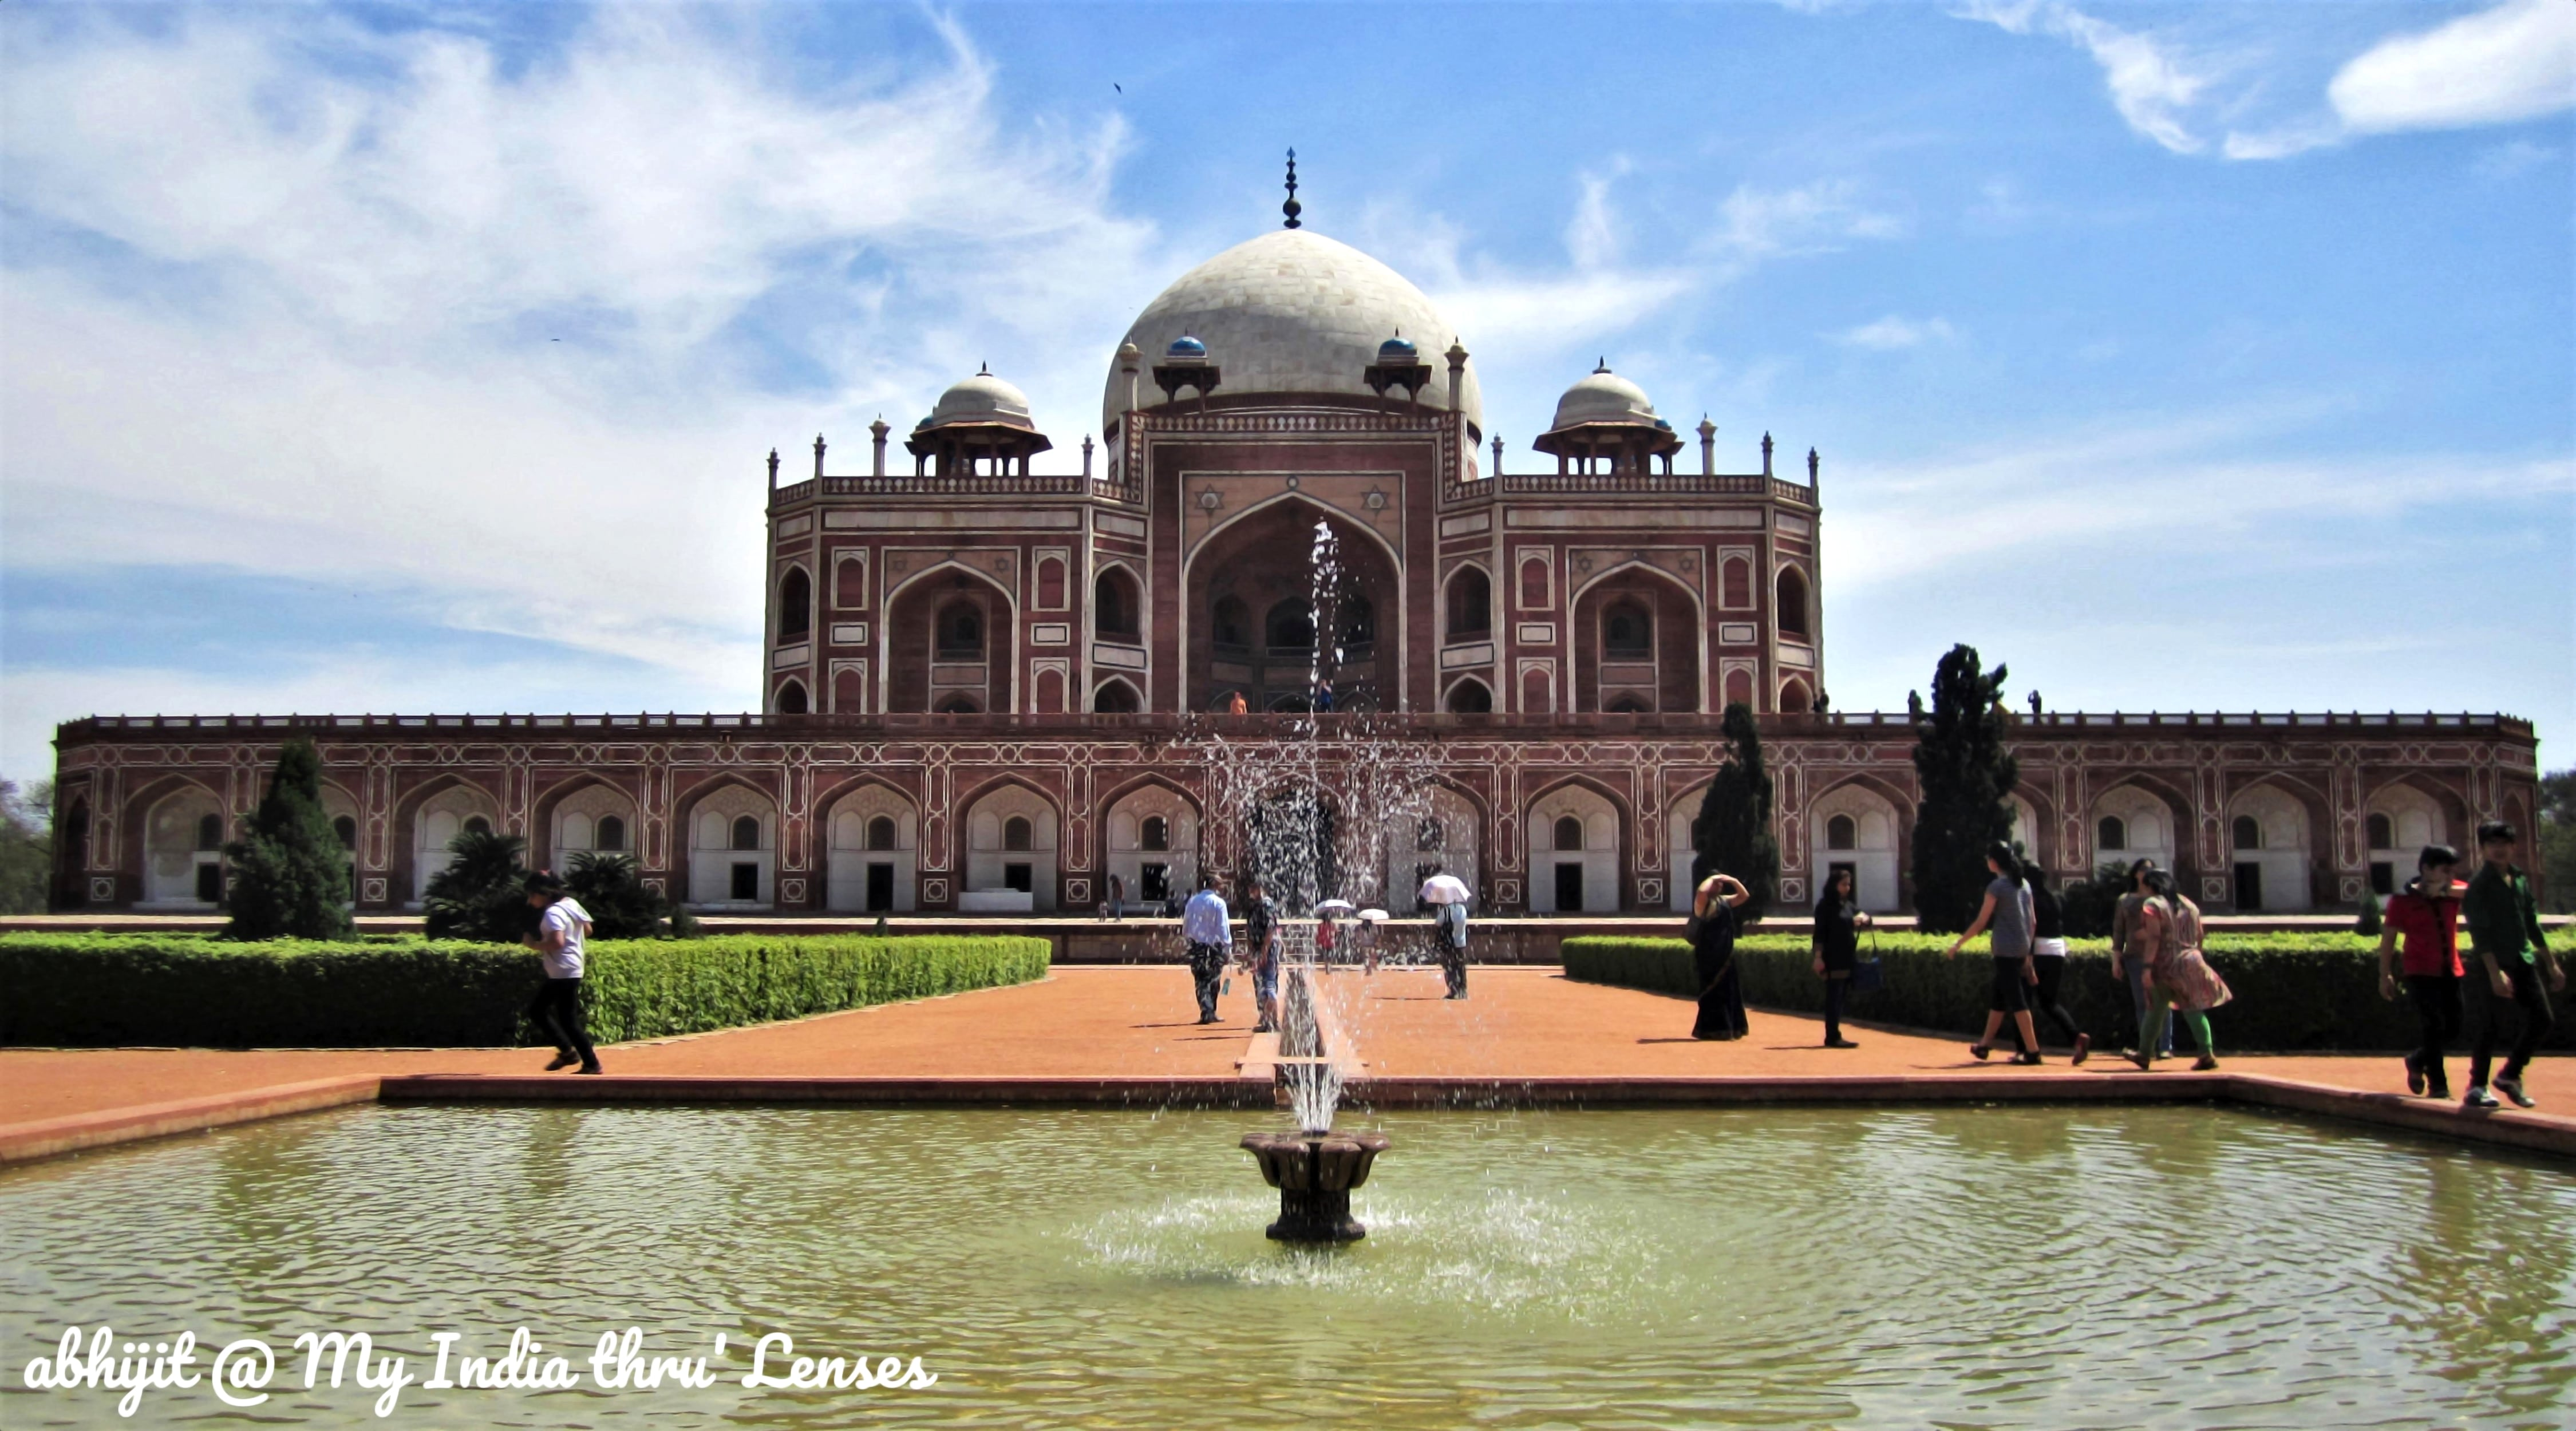 Humayun's Tomb - The Front view